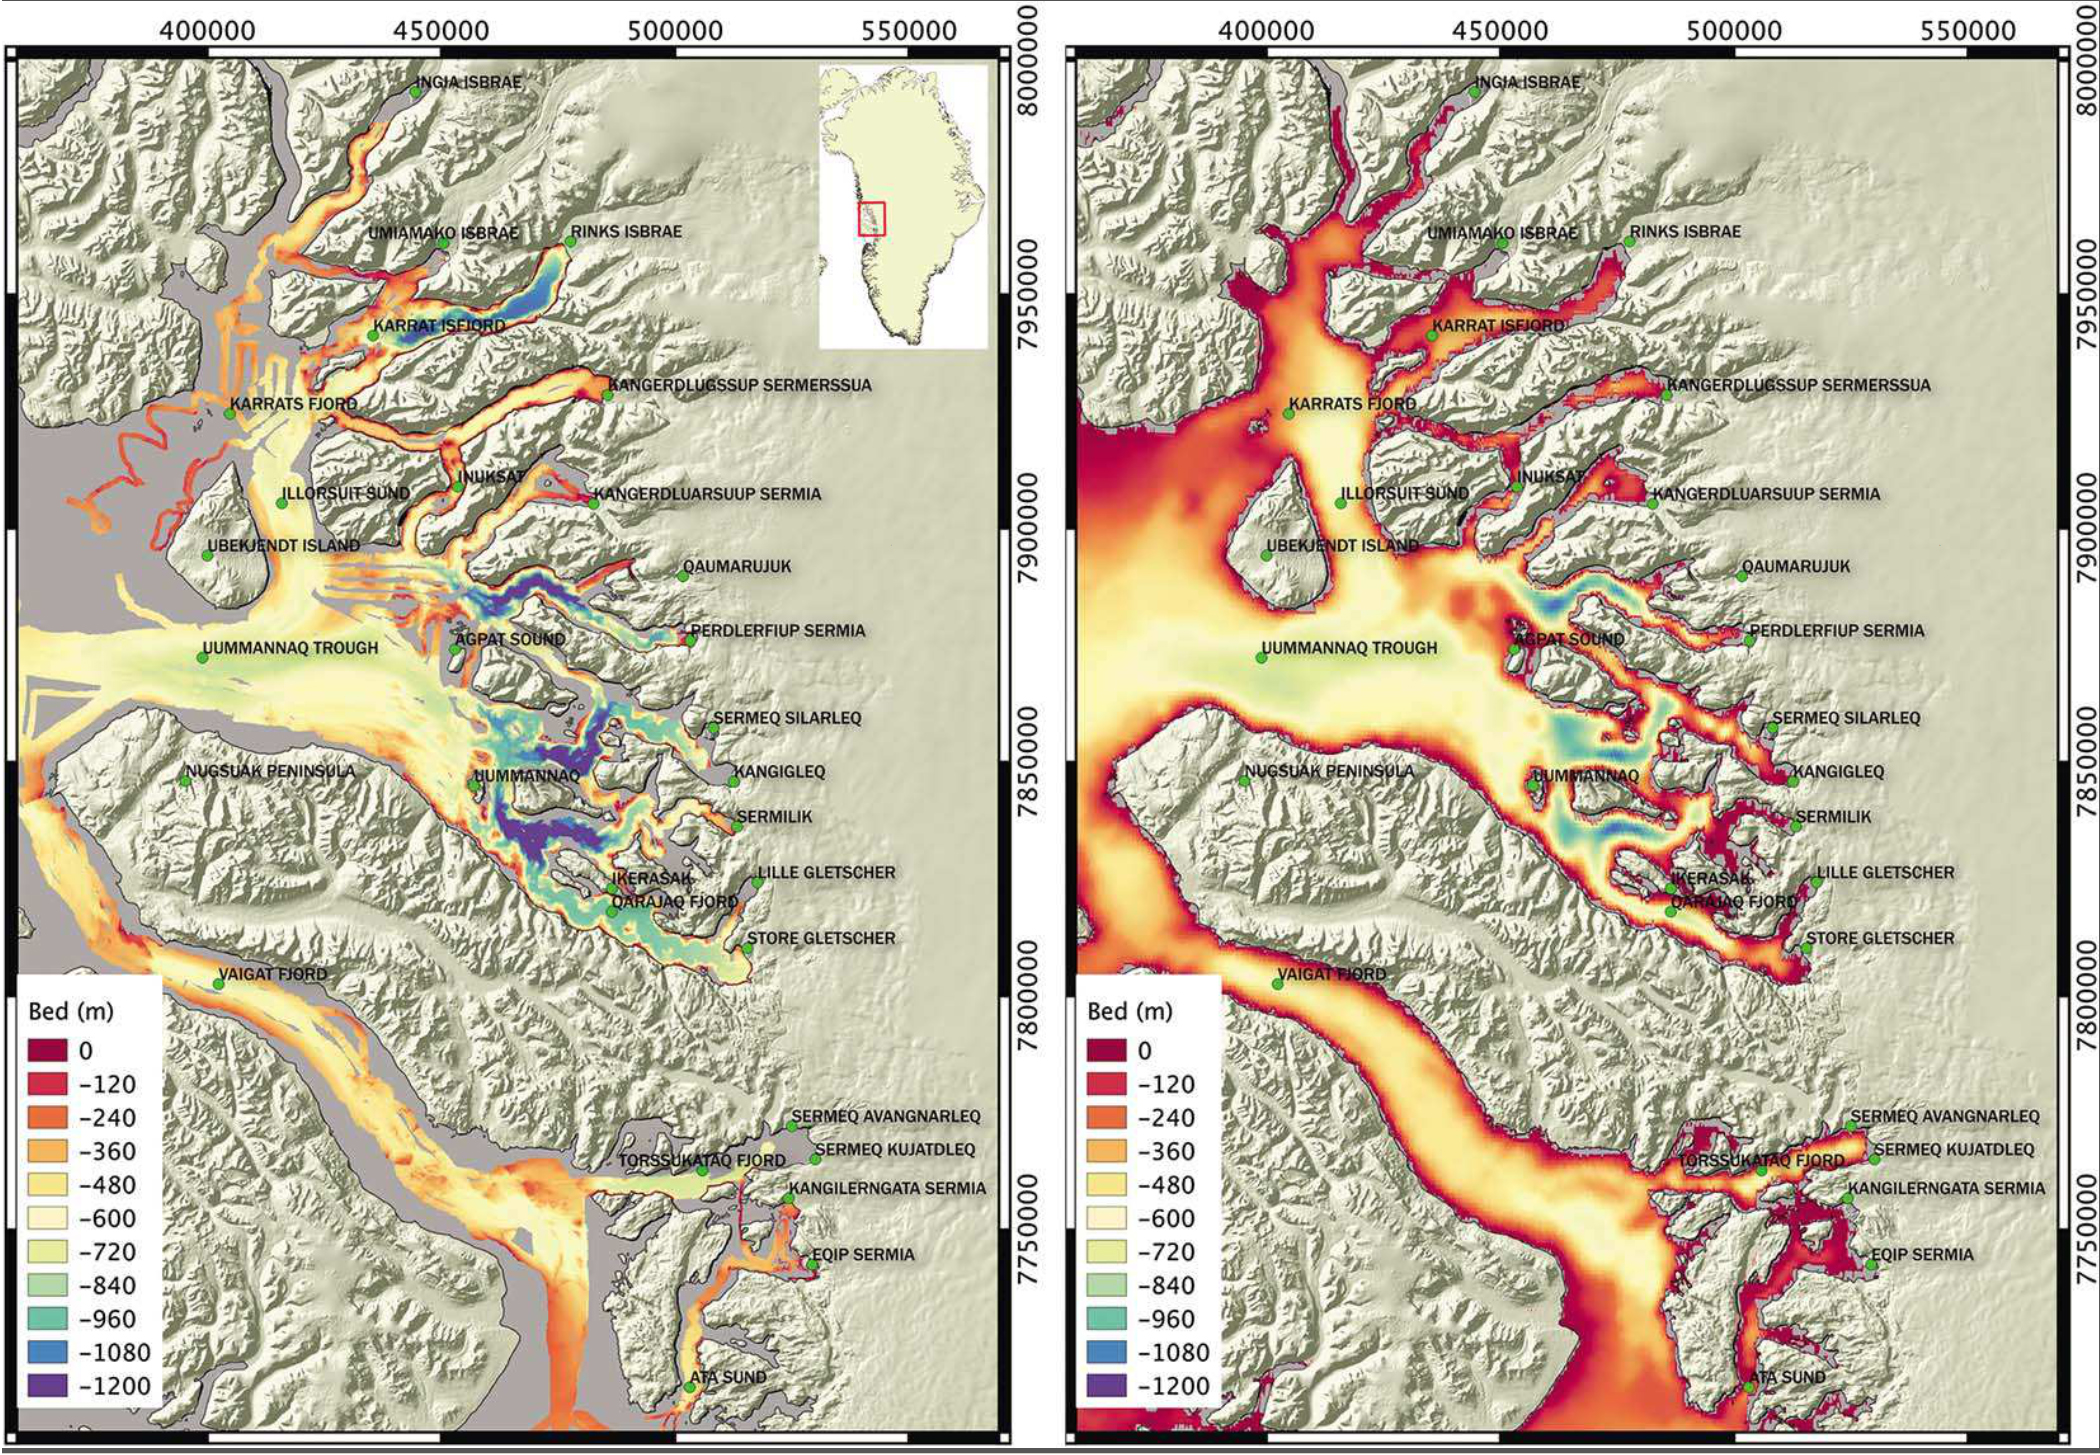 Can glacier melting enhance volcanic activity (see Geophys. Res. Lett. article)?